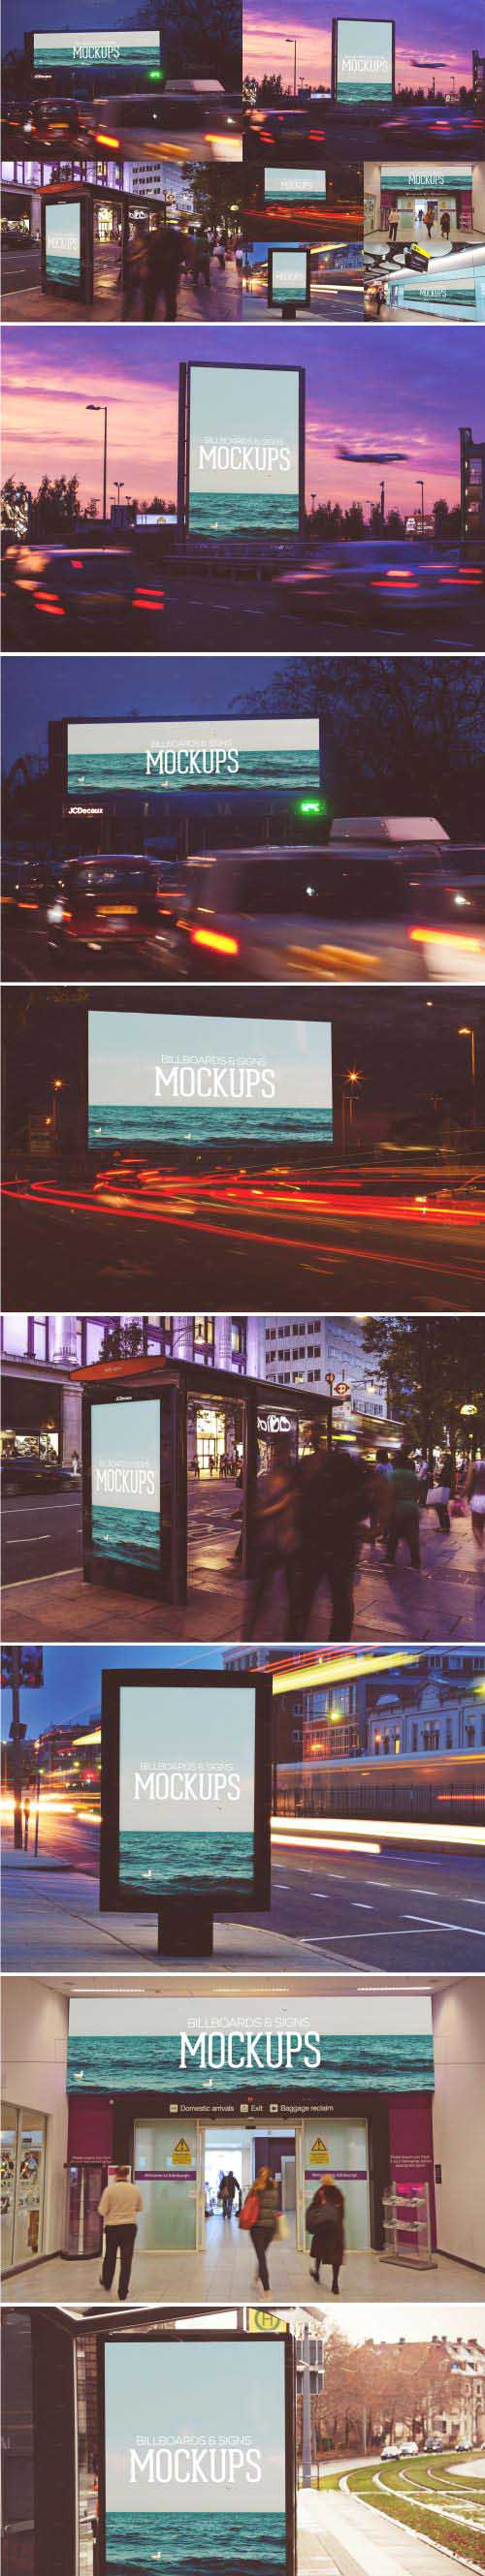 Billboards - Mockups V02 731150